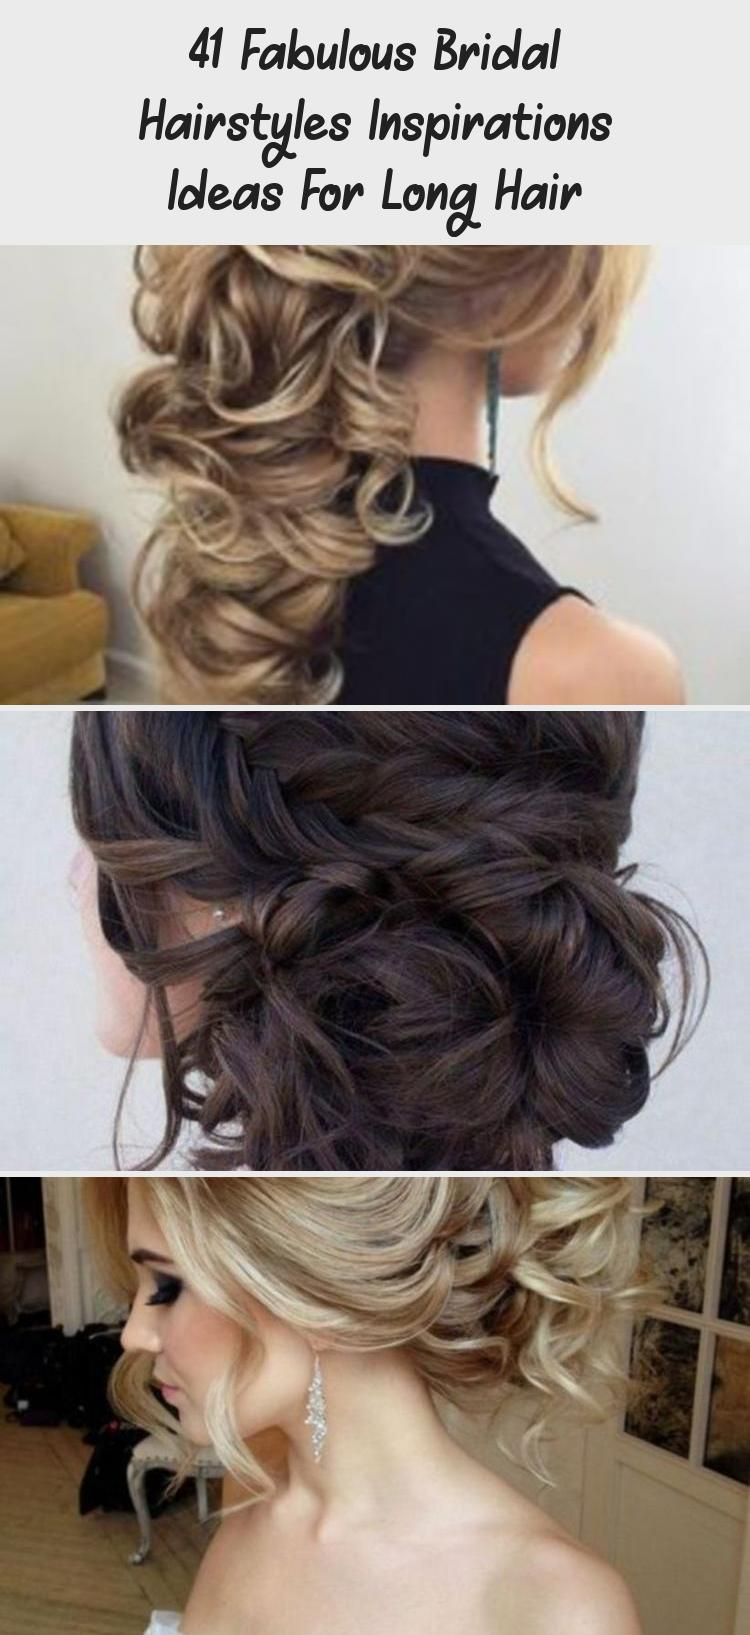 #beauty #style #fashion #hair #makeup #skincare #nails #health #fitness #exercise #bridesmaidhairBob...